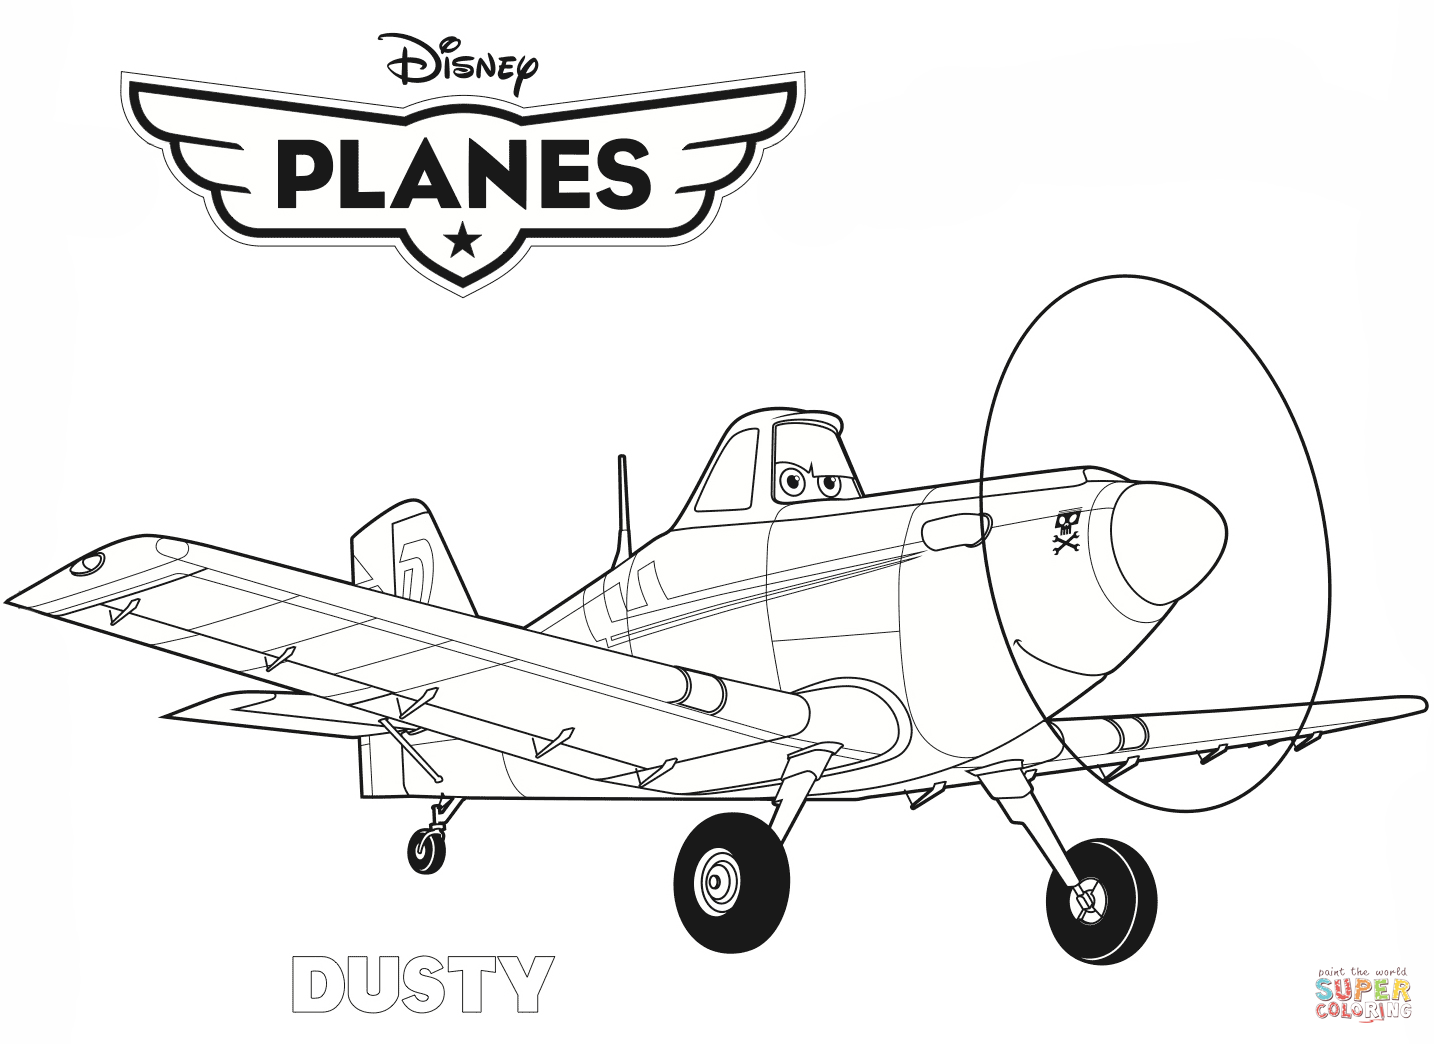 Plane Coloring Pages Free Coloring Pages Download | Xsibe pixar ...